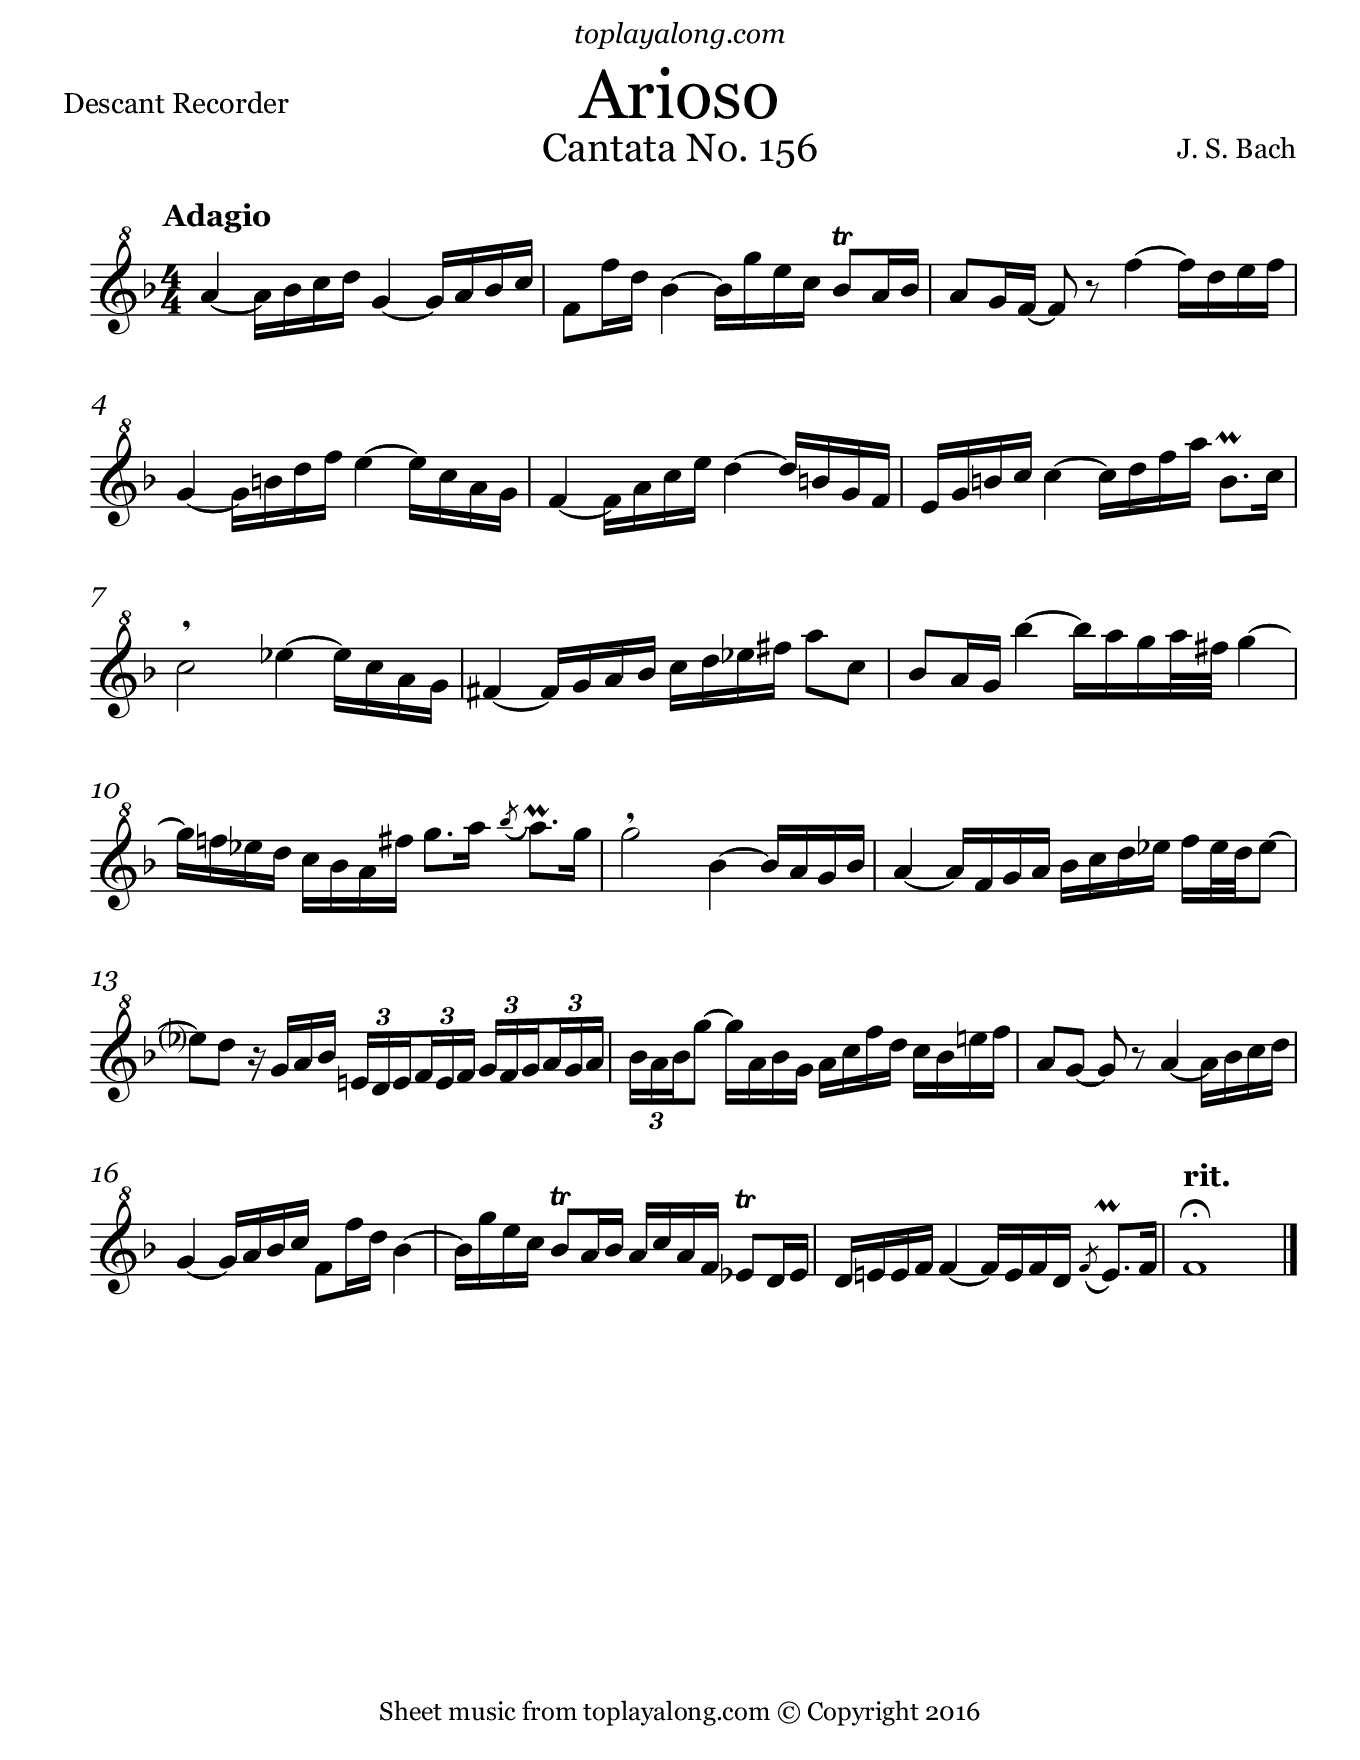 Arioso from Cantata BWV 156 by J. S. Bach. Sheet music for Recorder, page 1.